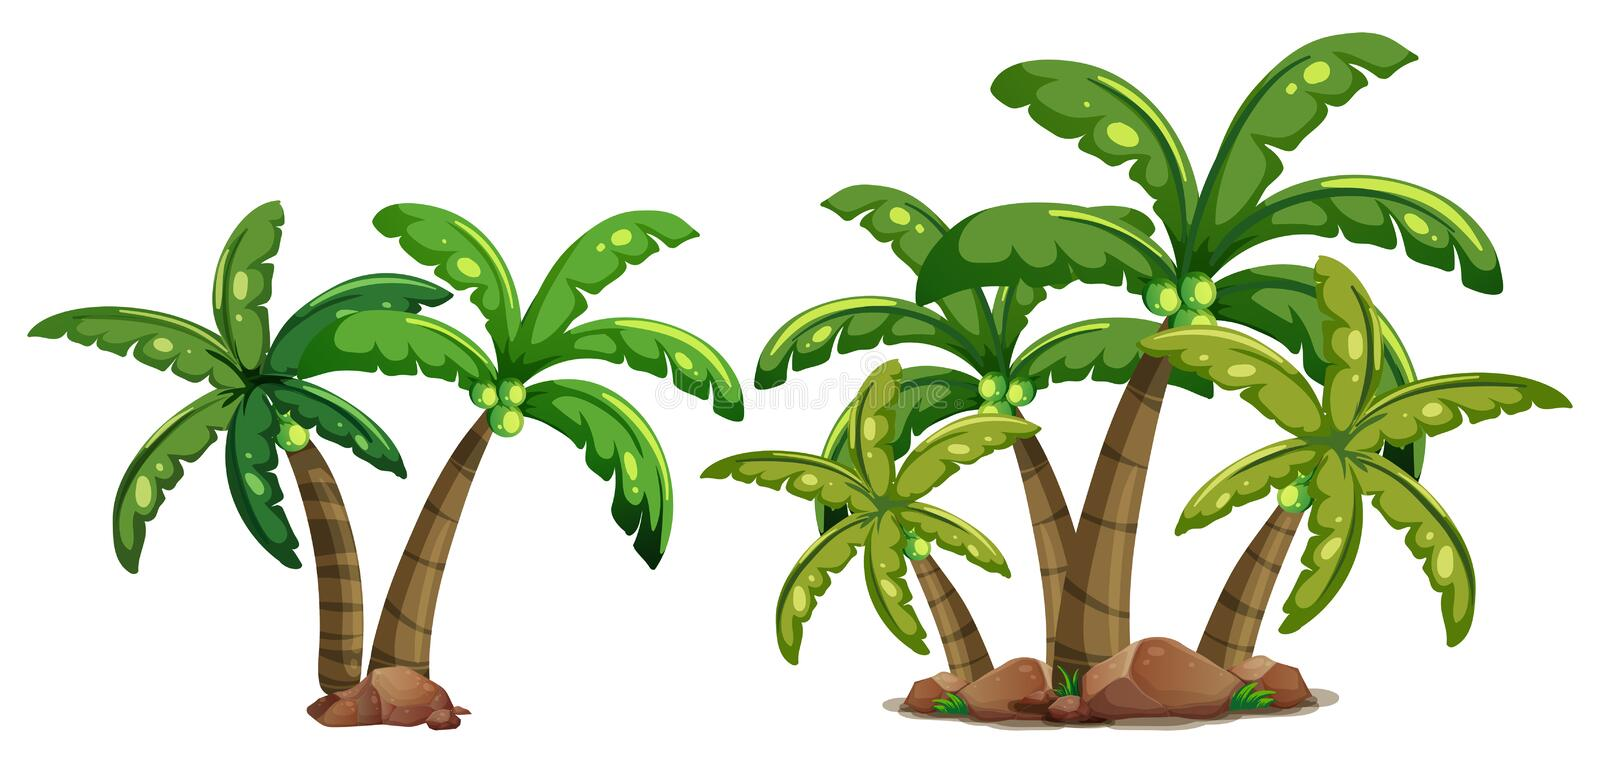 Coconut trees. Illustration of coconut trees on a white background vector illustration